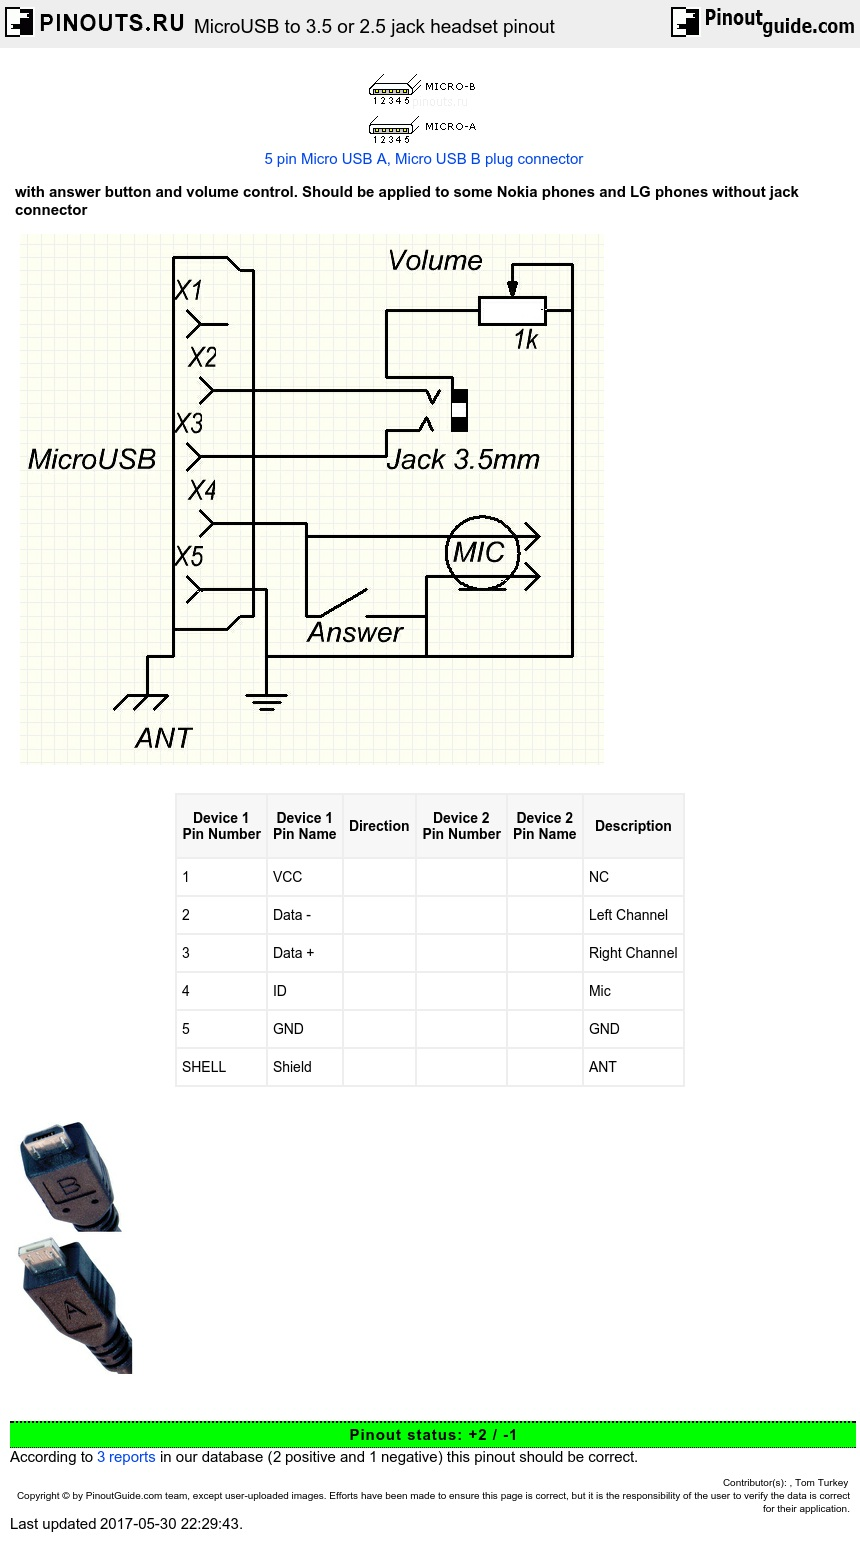 microusb_headset micro b usb wiring diagram wiring diagram shrutiradio micro usb charger wiring diagram at crackthecode.co